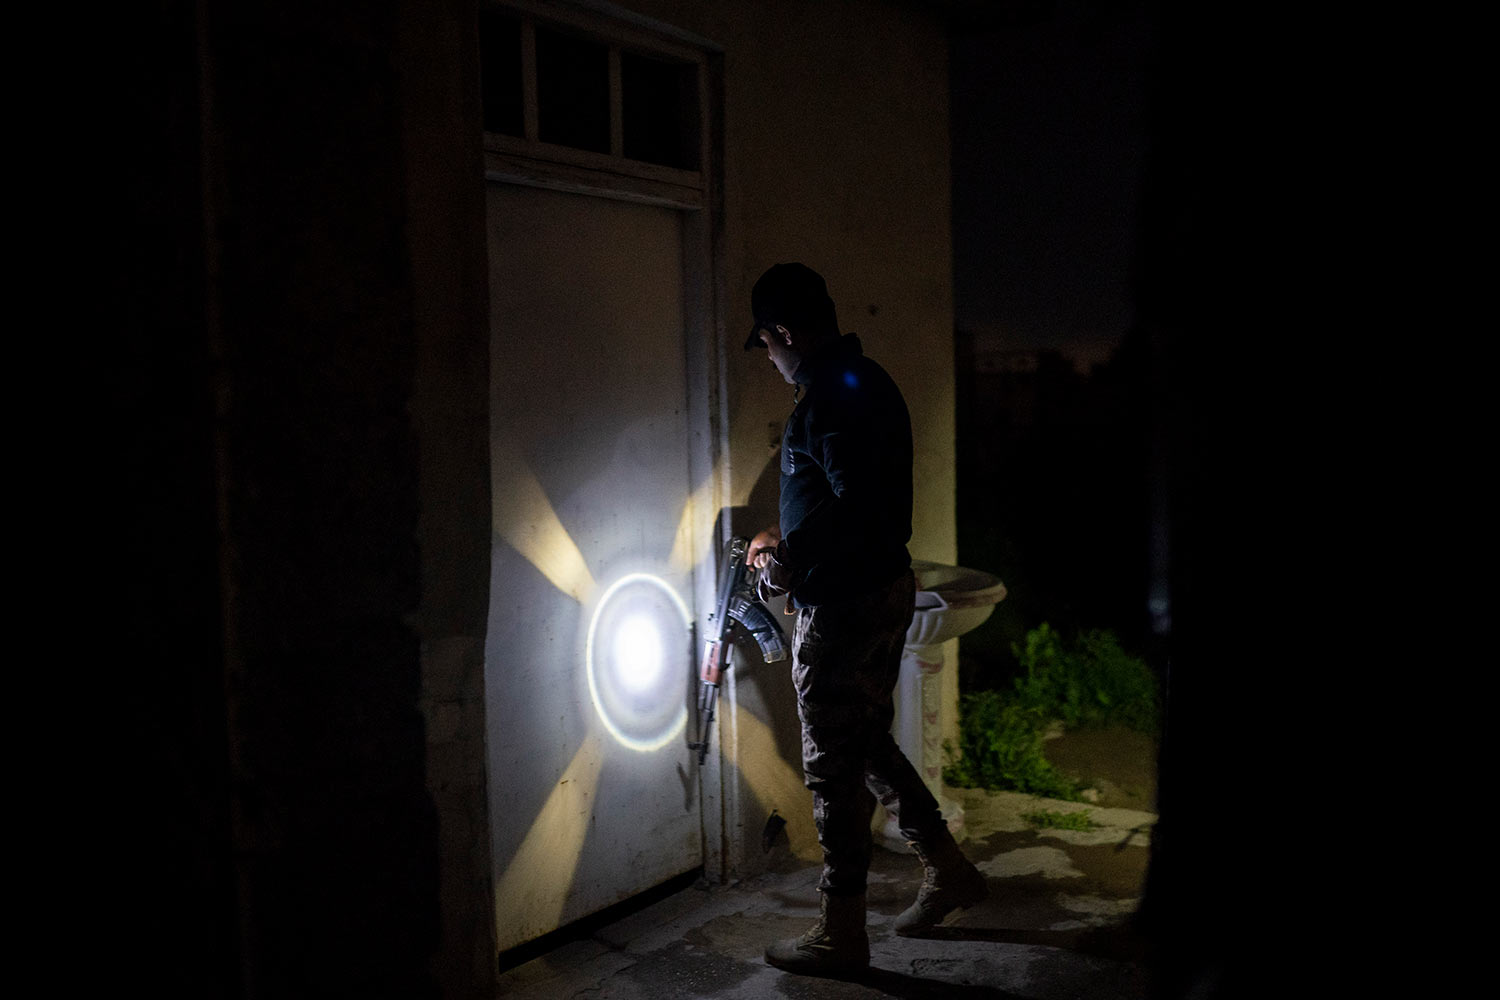 In this April 2, 2019 photo, an Iraqi army 20th division soldier uses his AK-47 riffle to knock on a door during a nighttime raid near Badoush, Iraq. (AP Photo/Felipe Dana)